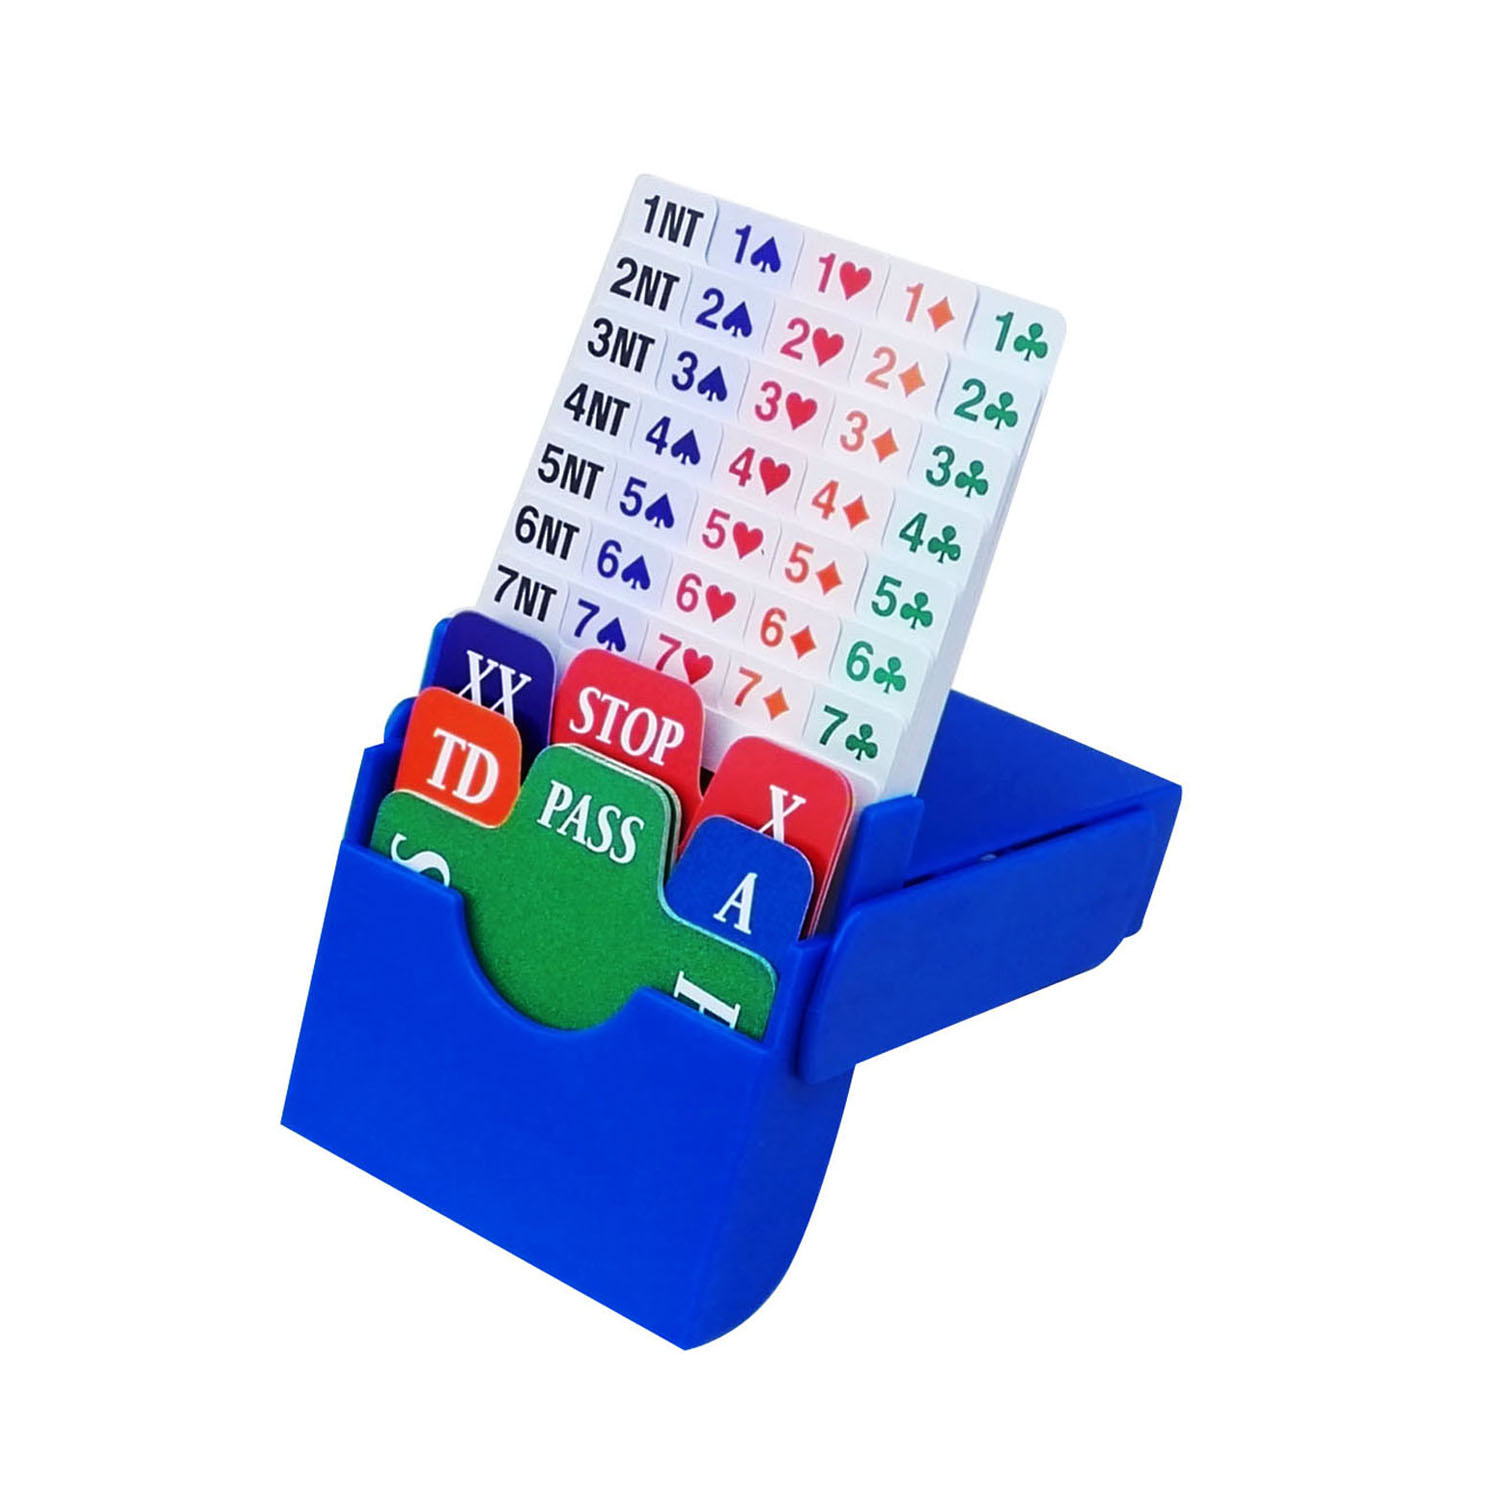 STBG003 Bidding Box(set of 4,Blue,incl 100% plastic bidding cards),free shipping